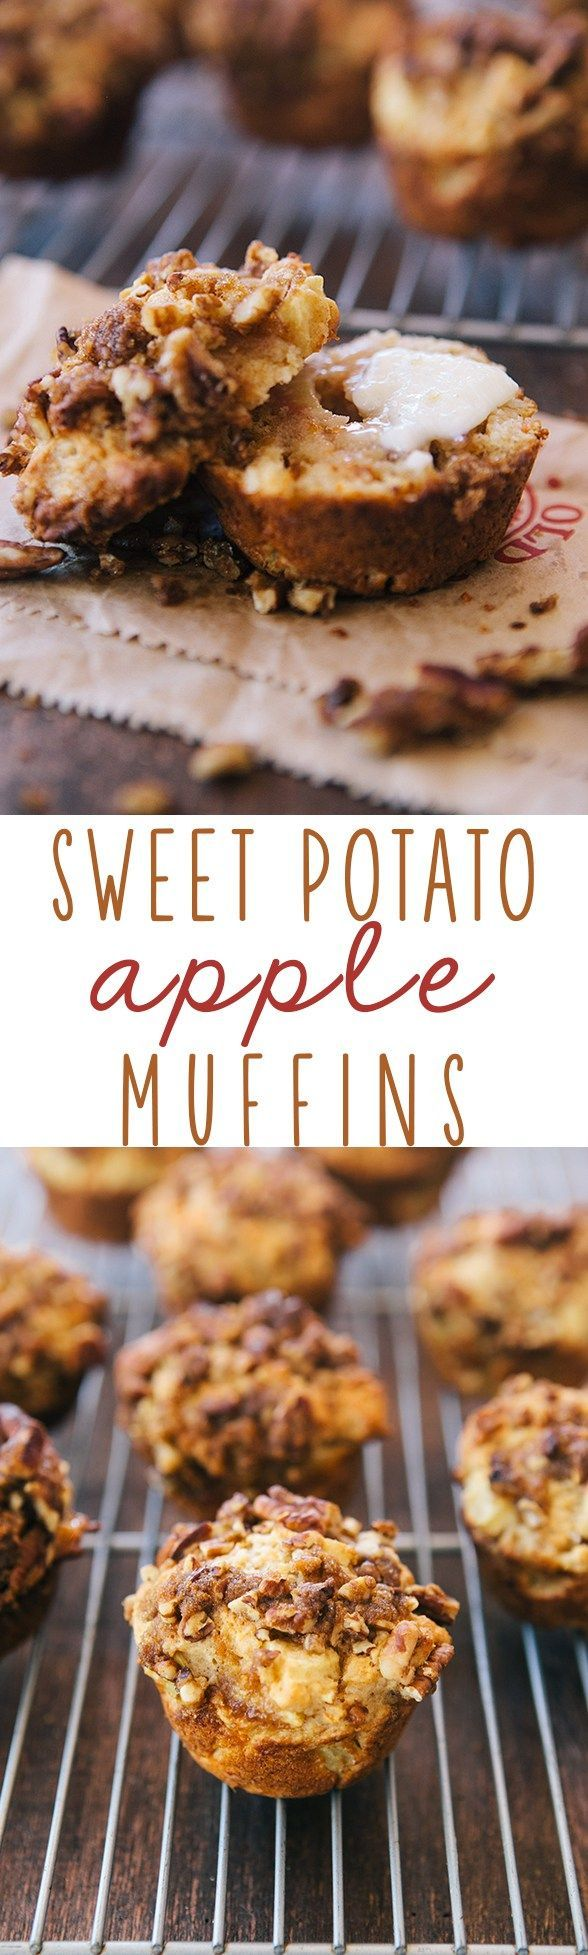 Sweet Potato Apple Muffins from @somethewiser